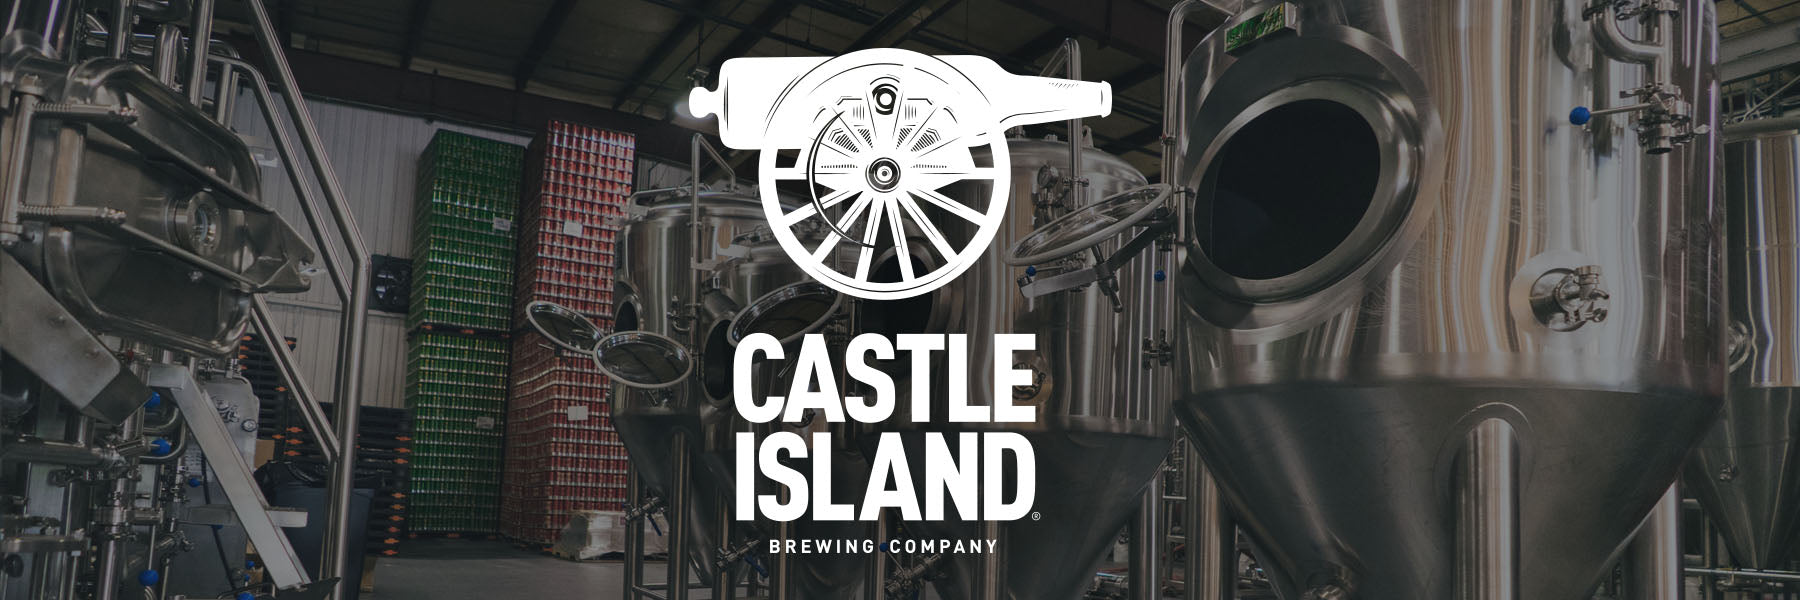 Castle Island Brewing Co. | 5bbl Pilot Brewhouse